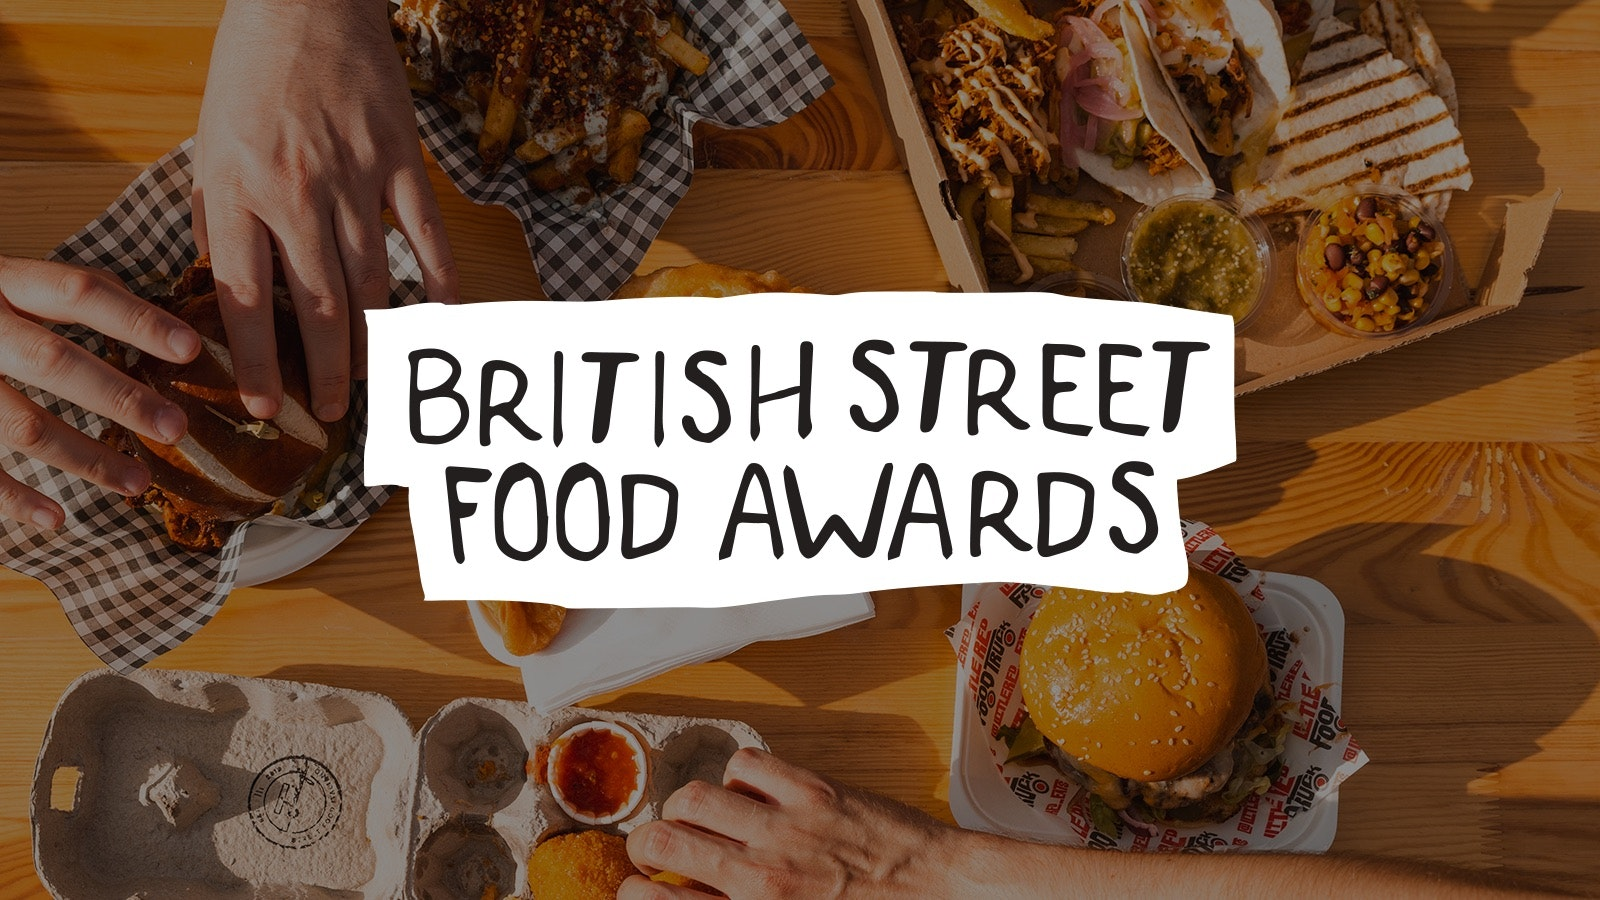 Chow Down: Thursday 19th August – British Street Food Awards Weekend